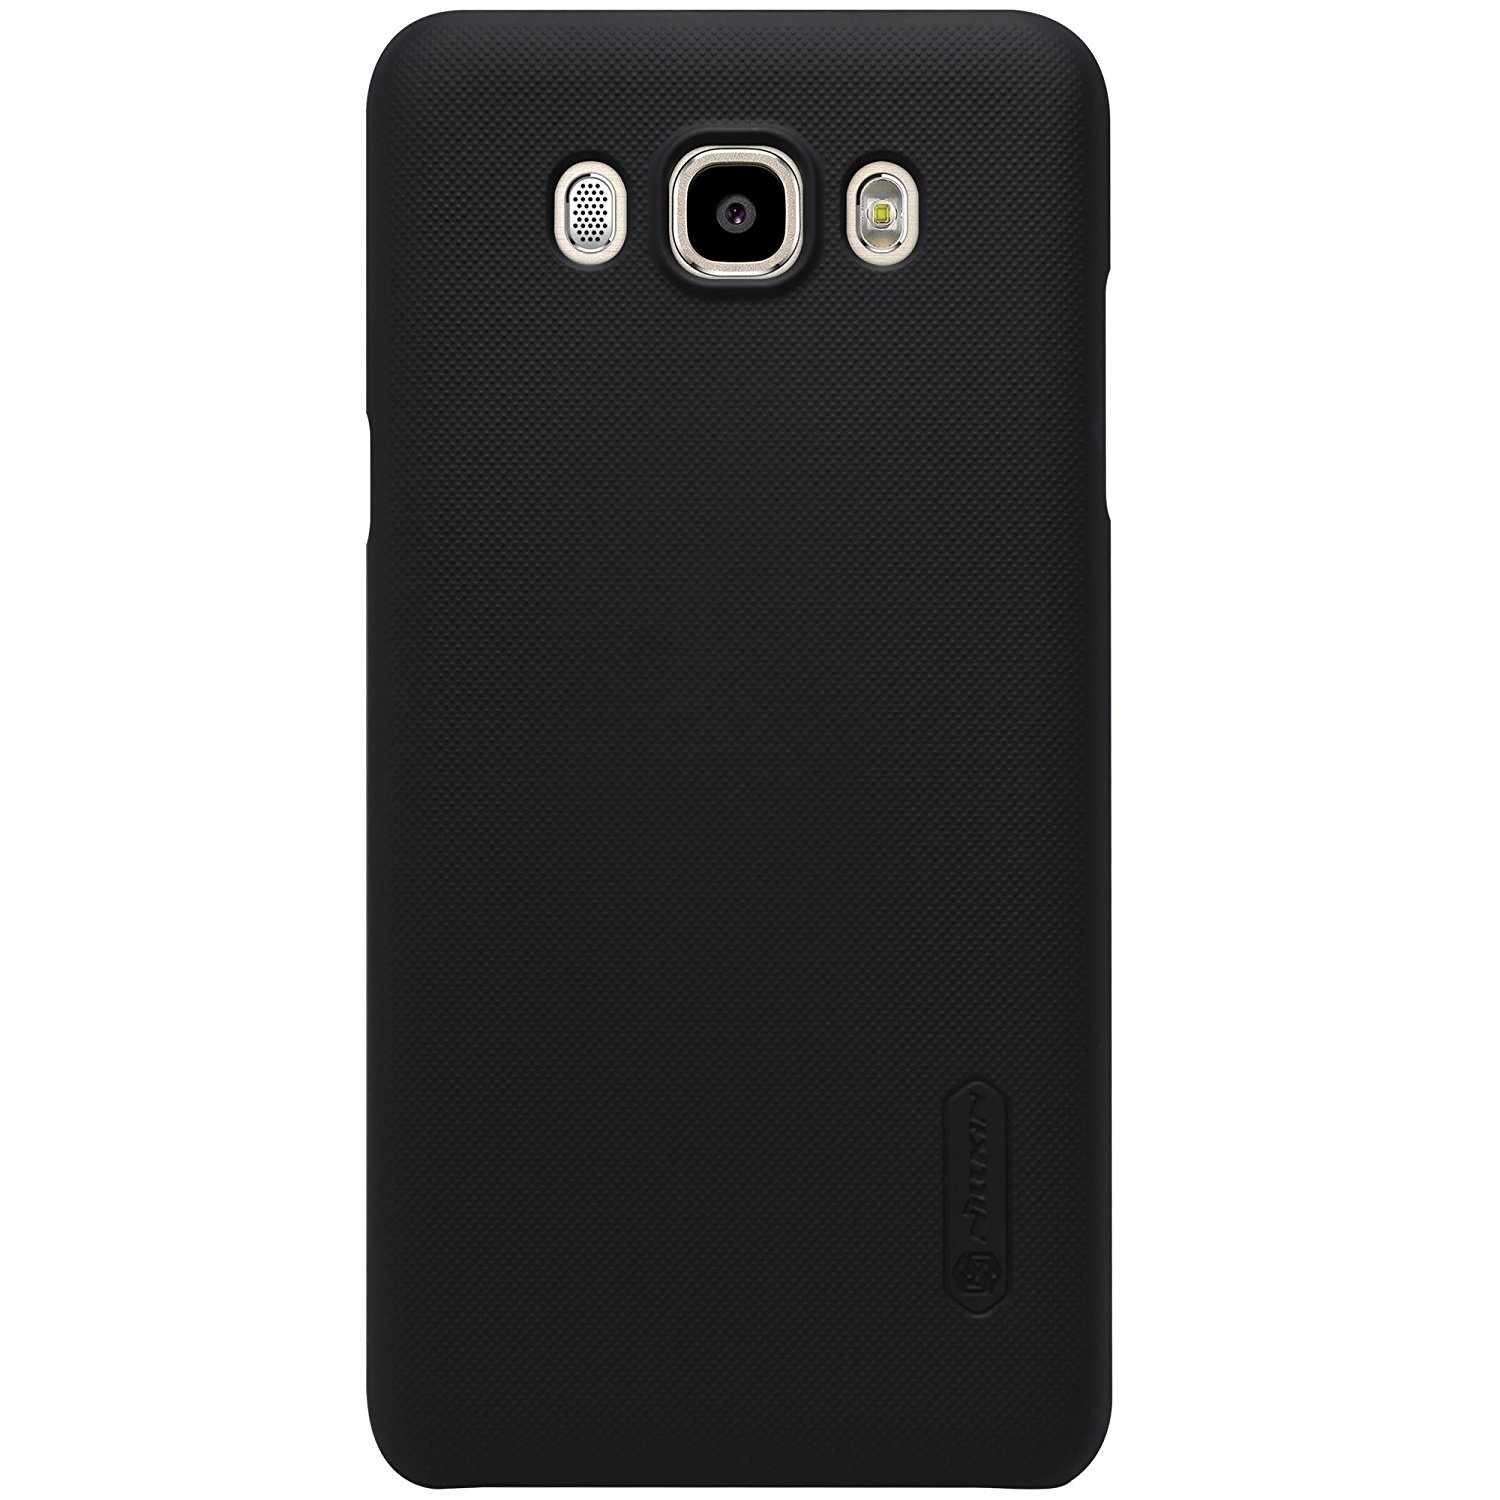 Nillkin Frosted Hard Case Samsung Galaxy J7 2016 Casing Cover - Hitam